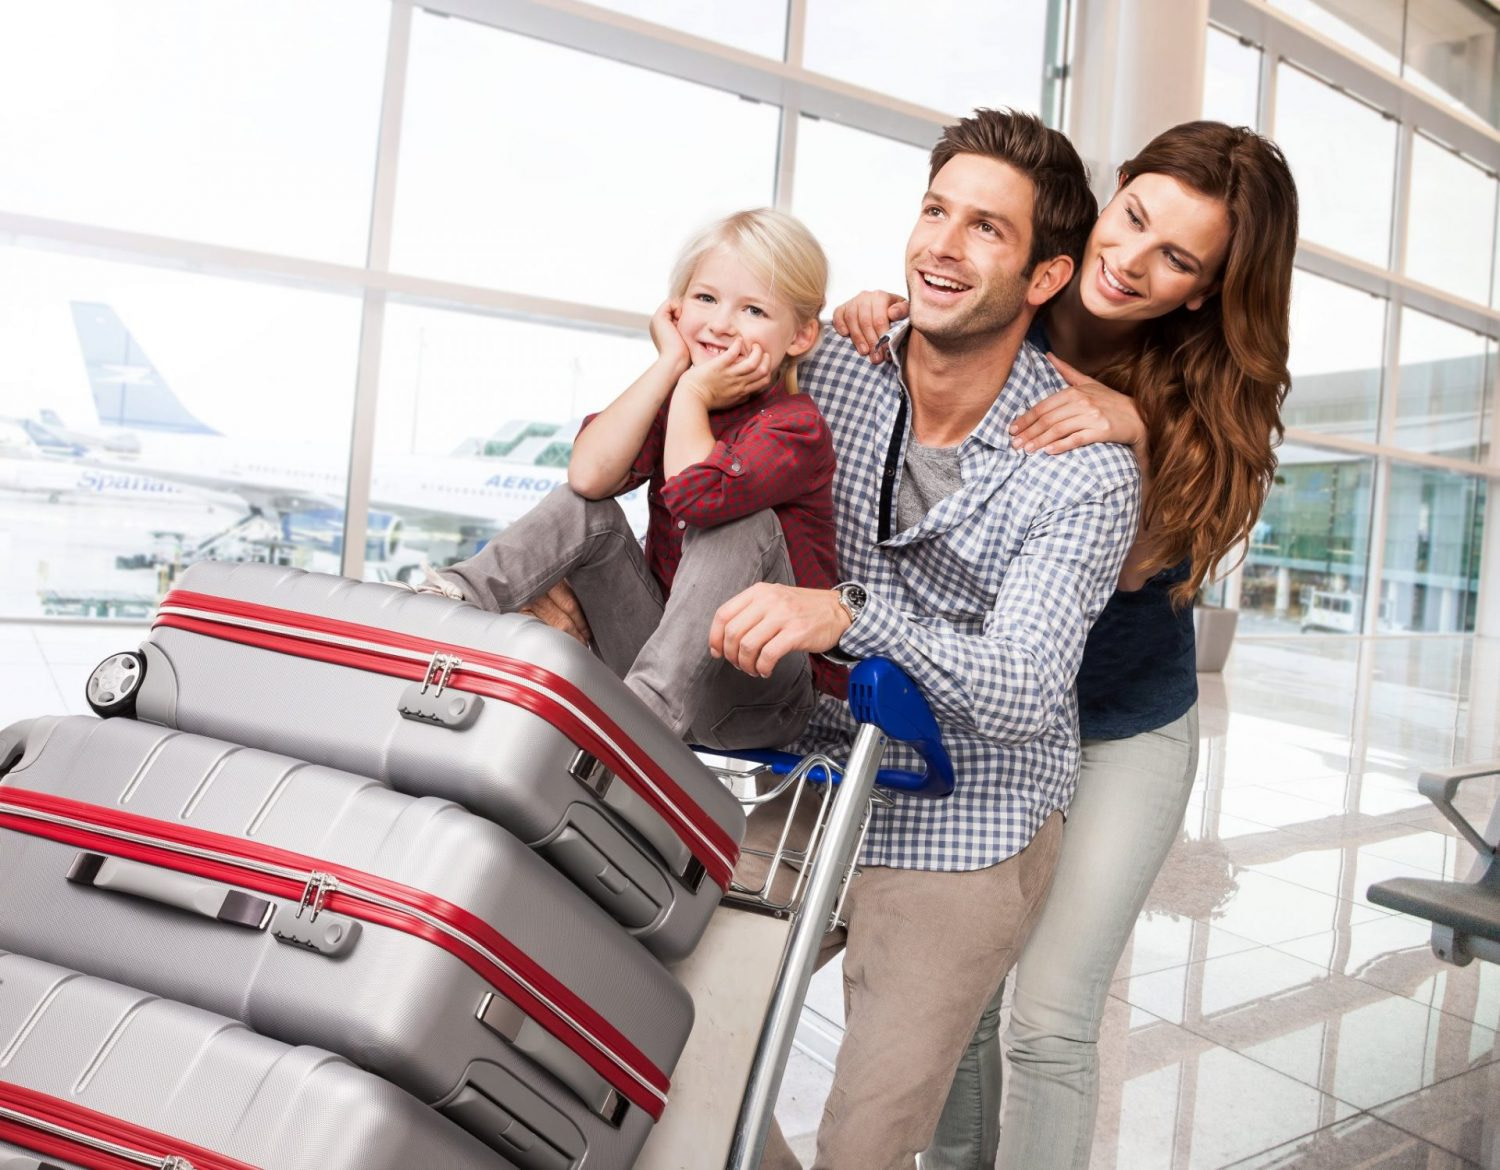 how to choose luggage